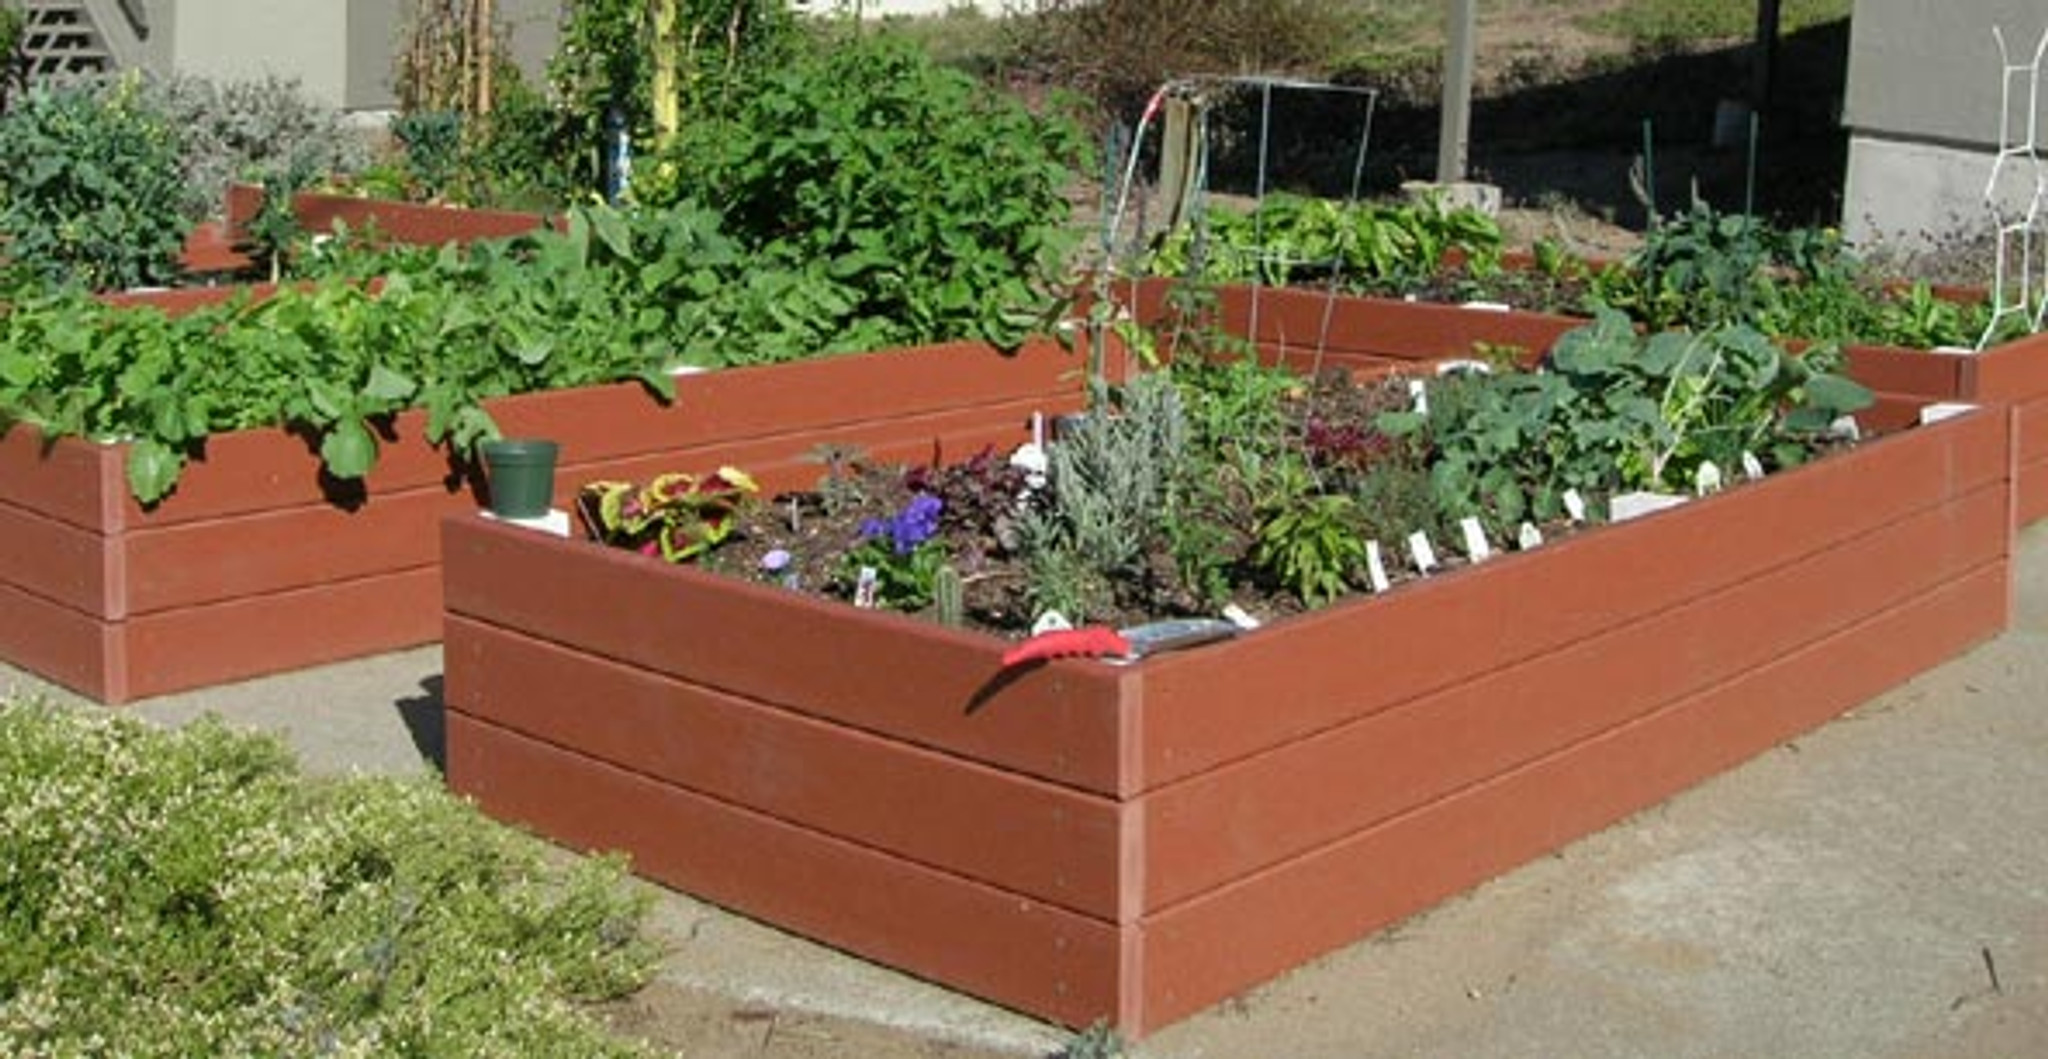 Recycled Plastic Raised Garden bed - 4' x 8' x 16.5